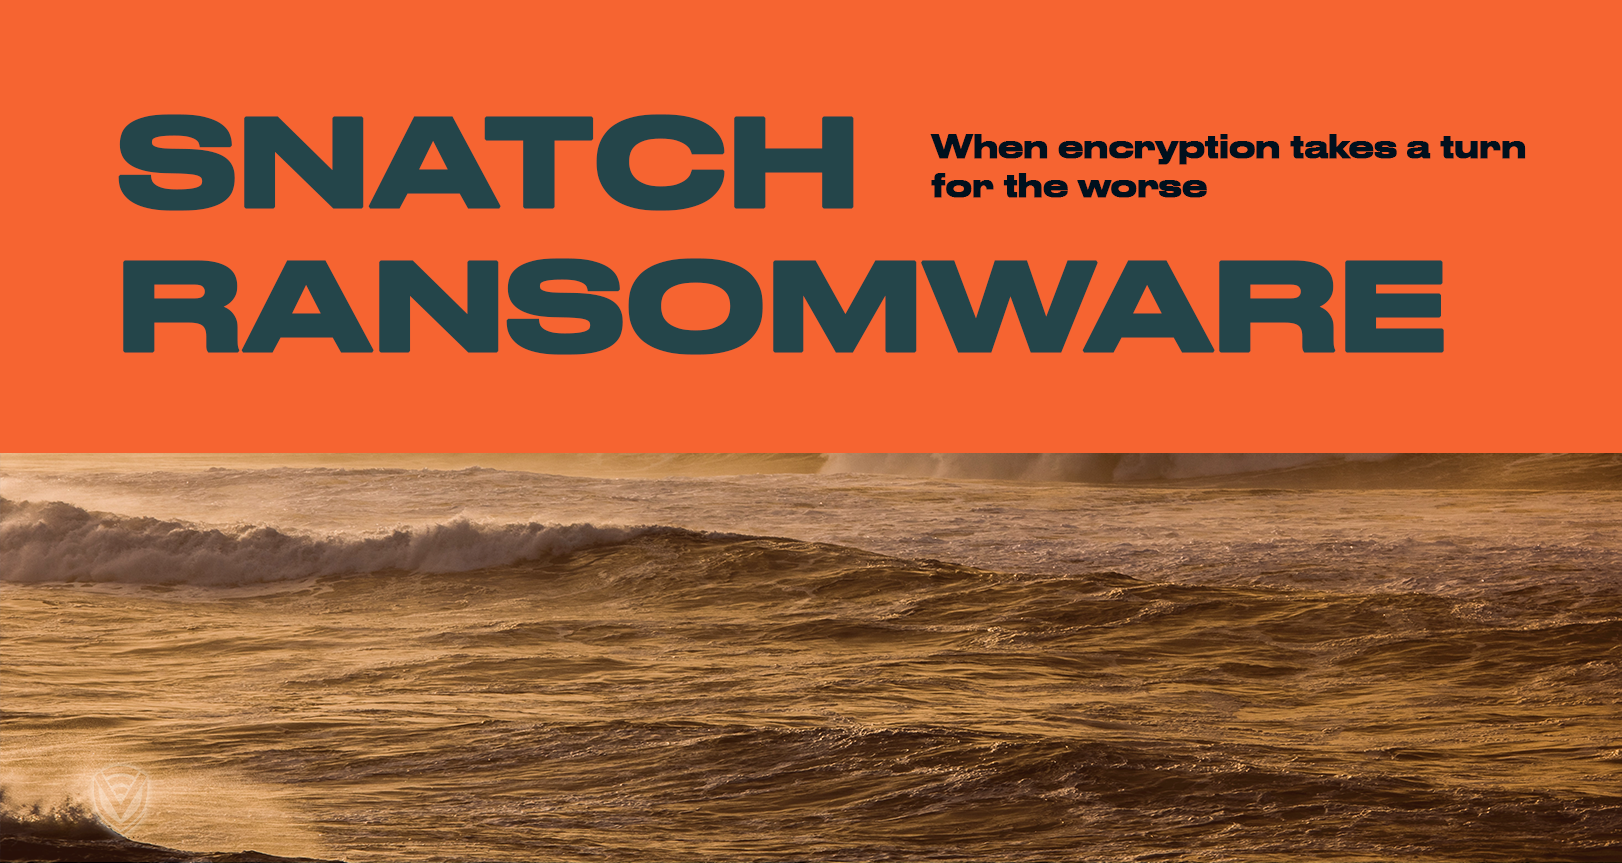 What is Snatch Ransomware?